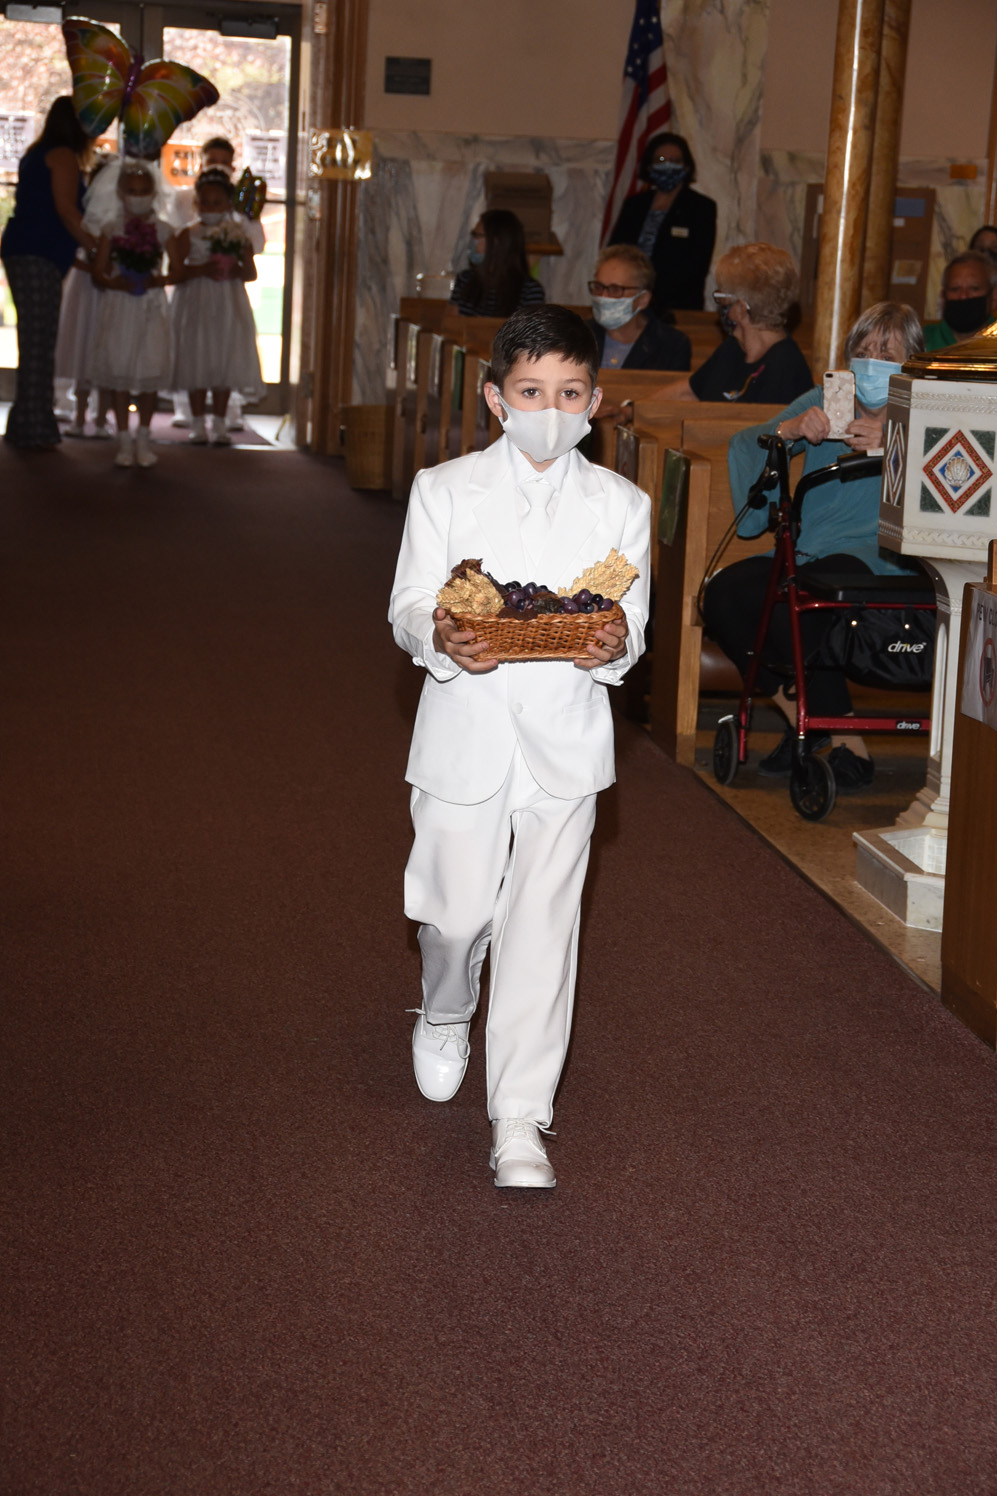 FIRST-COMMUNION-MAY-15-2021-10011088